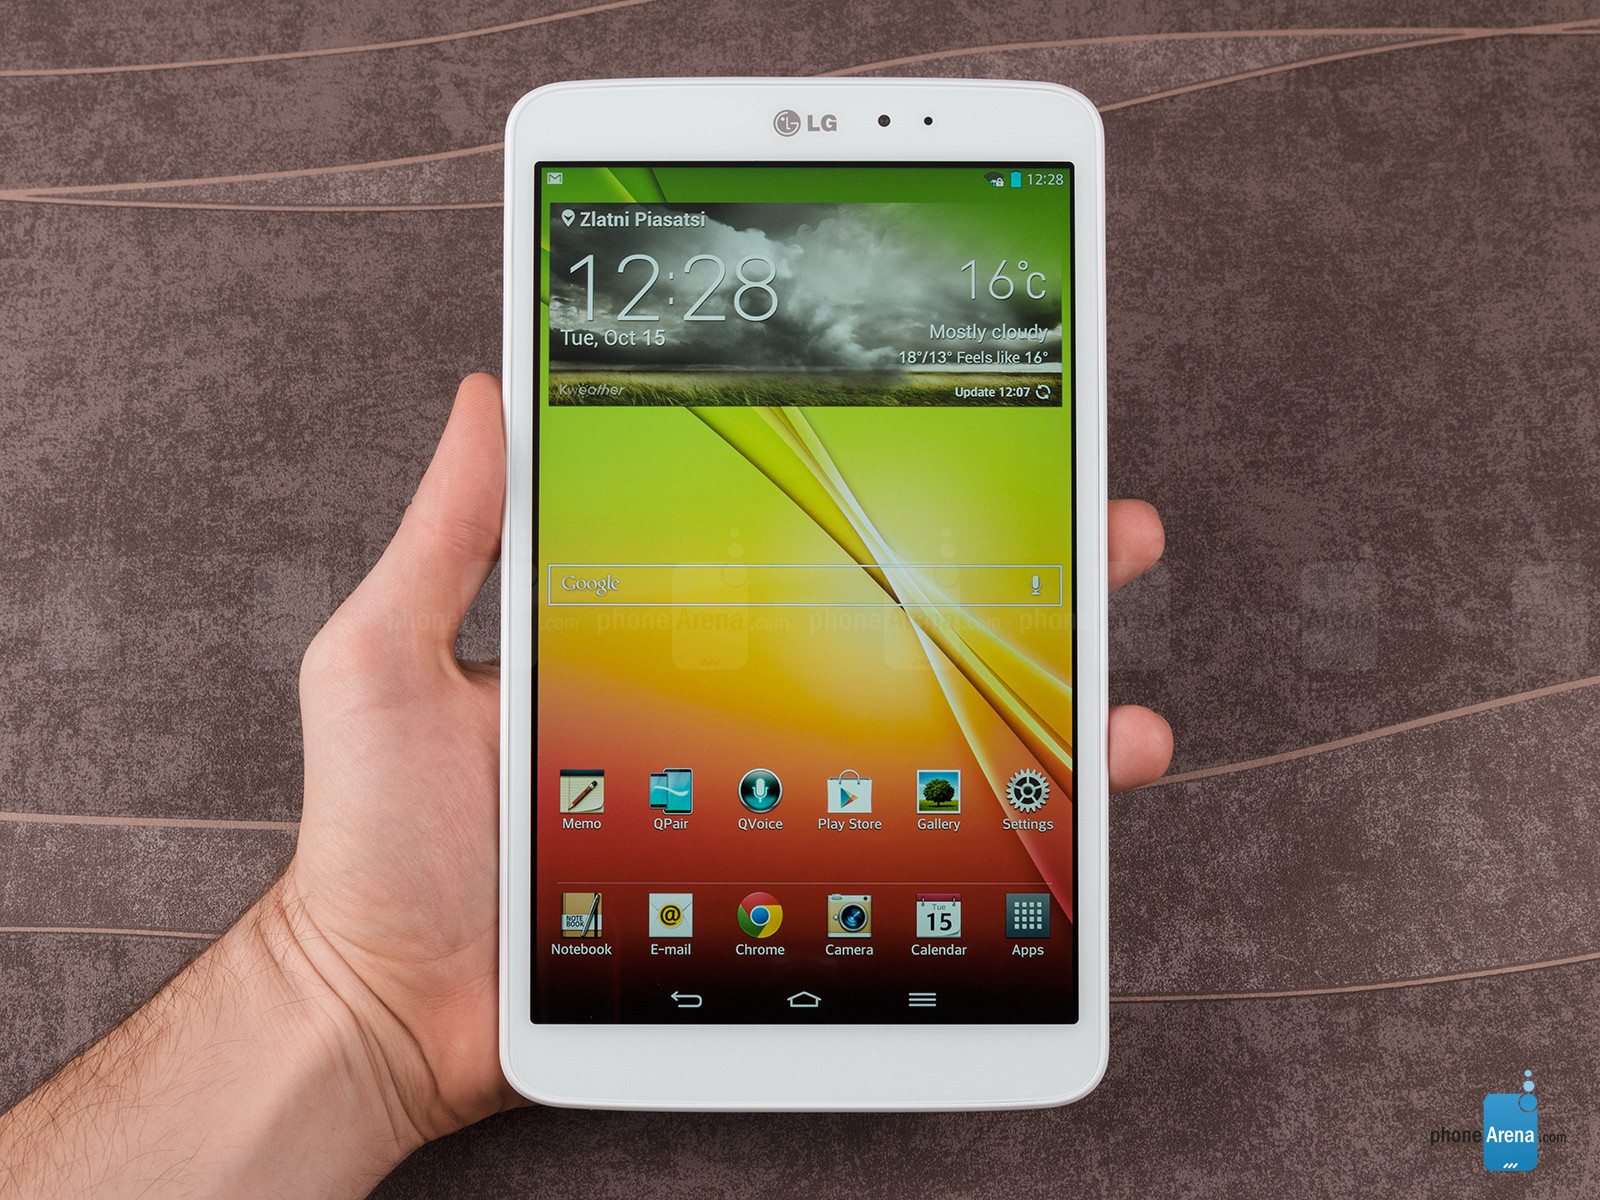 lg-g-pad-8-3-best-budget-android-tablet-2016-a